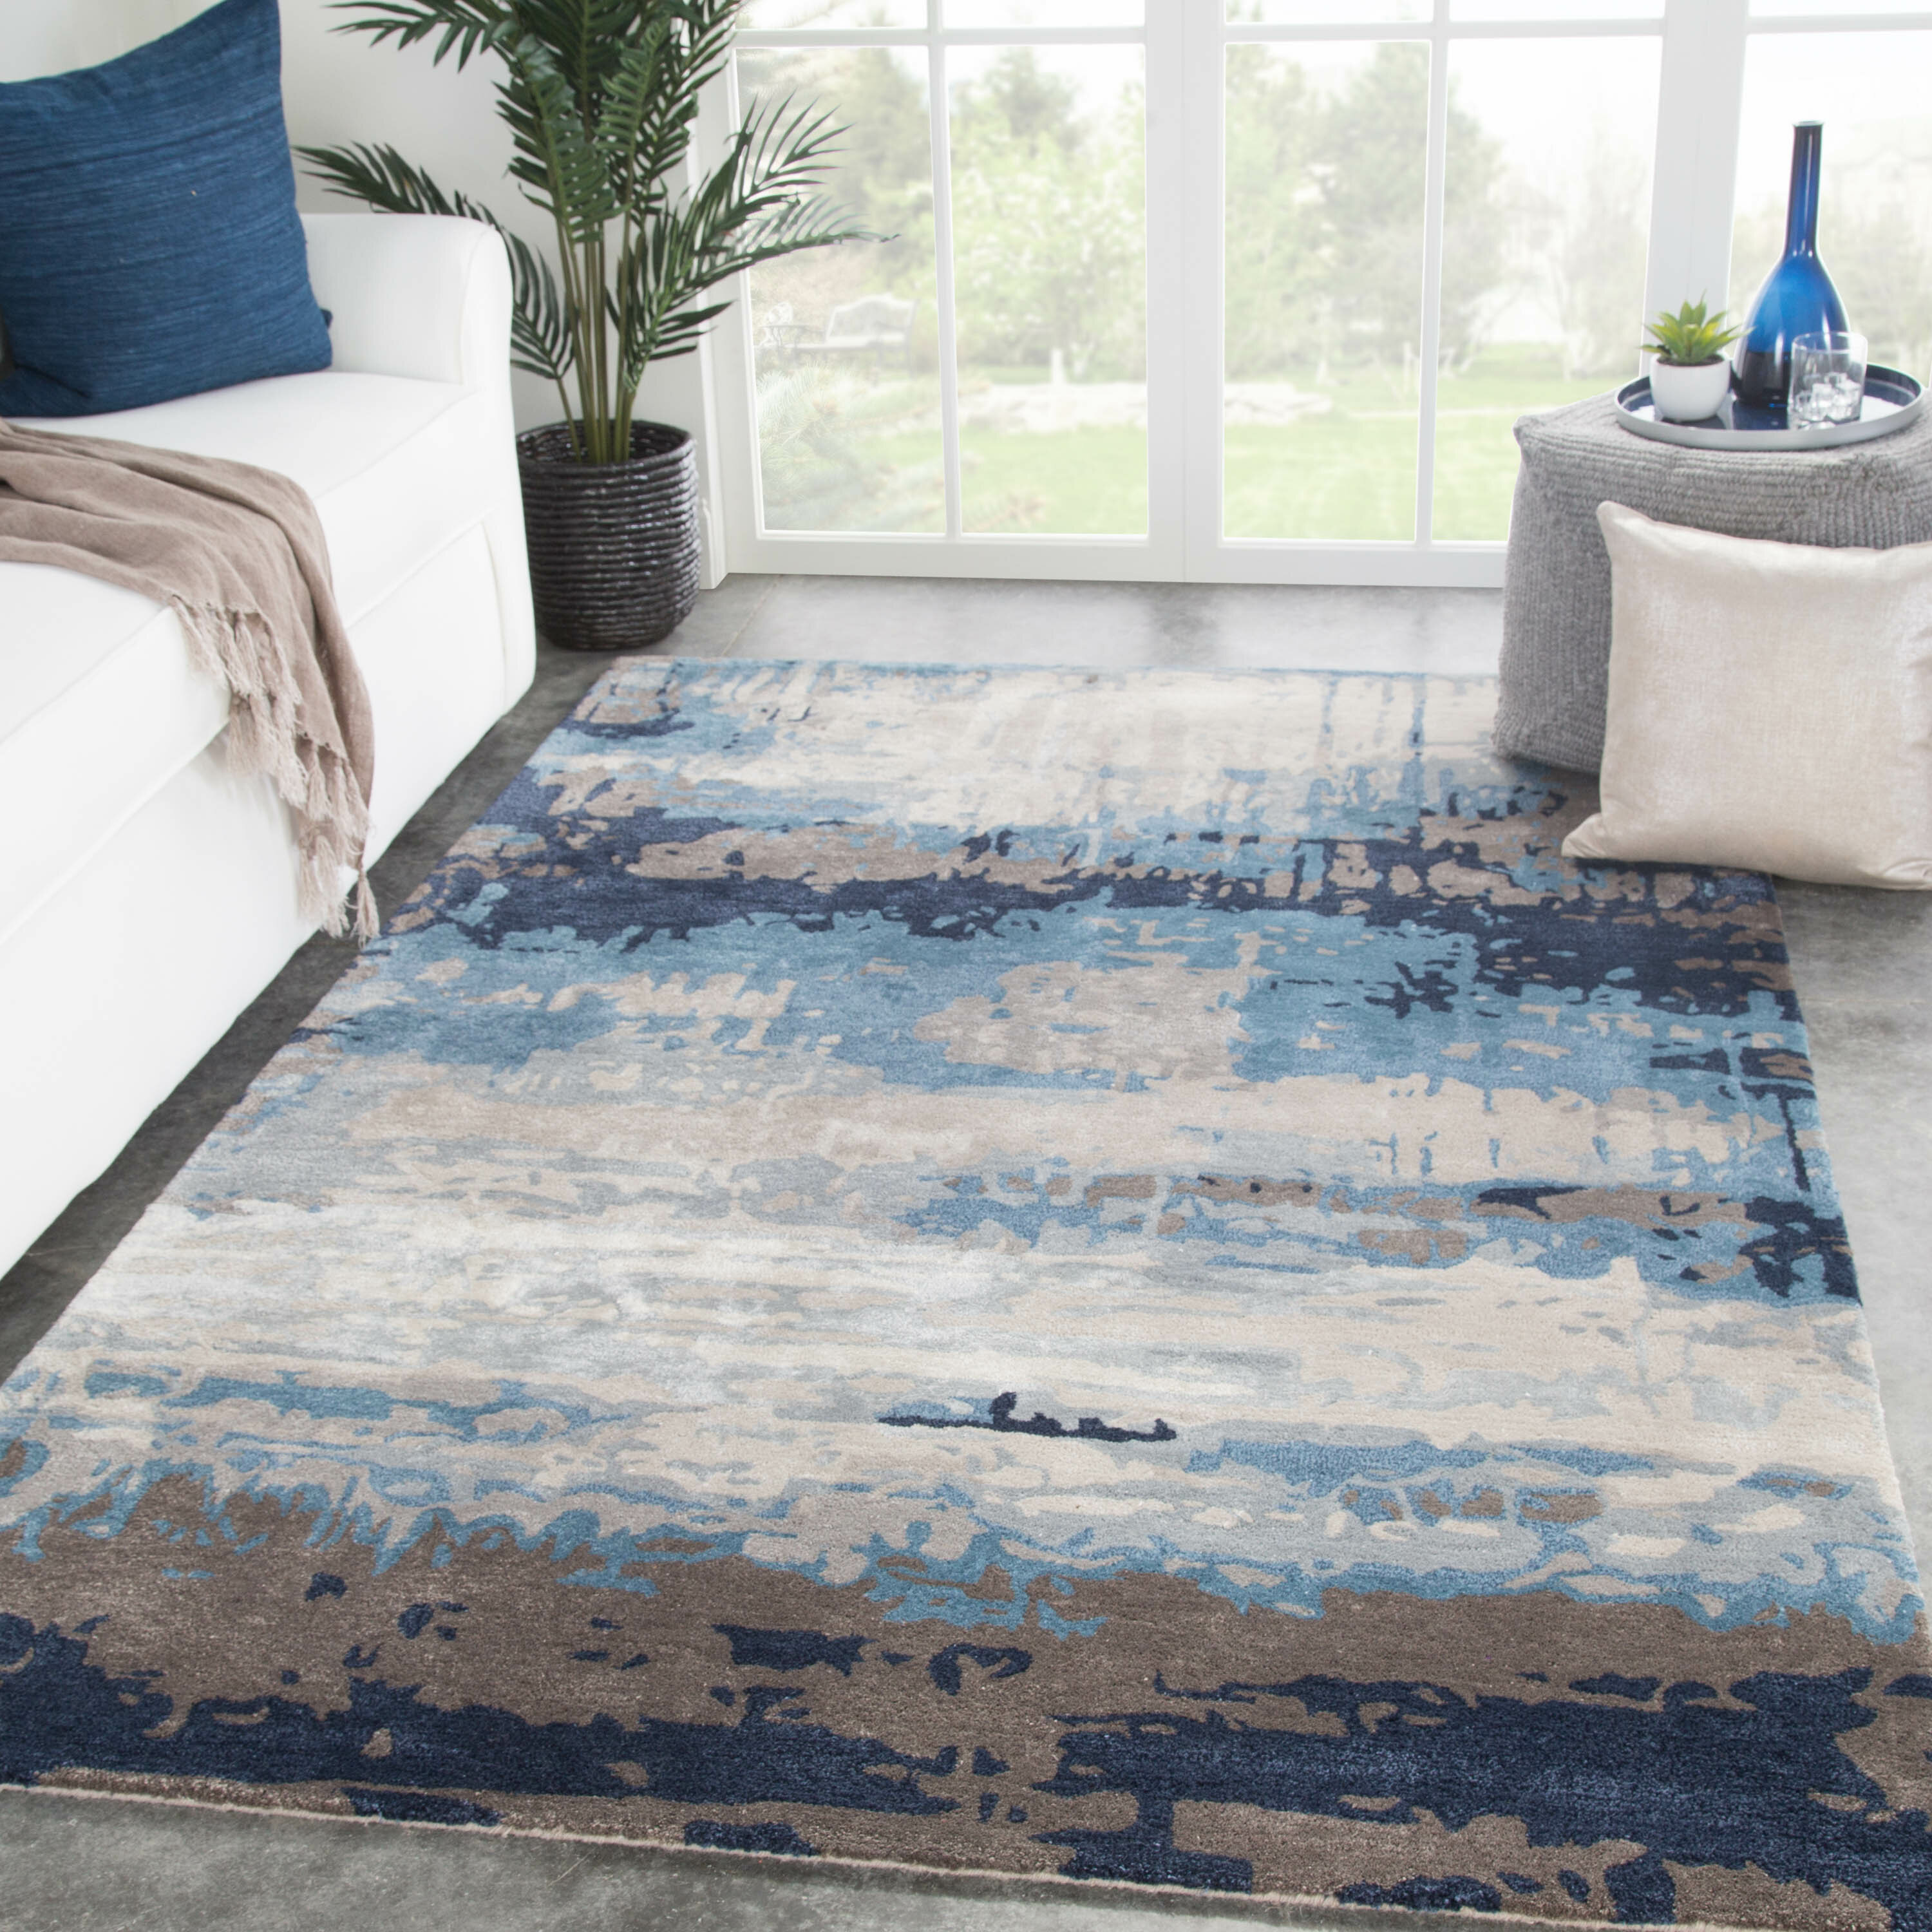 Picture of: Fairmount Abstract Handmade Tufted Wool Blue Gray Beige Area Rug Reviews Joss Main